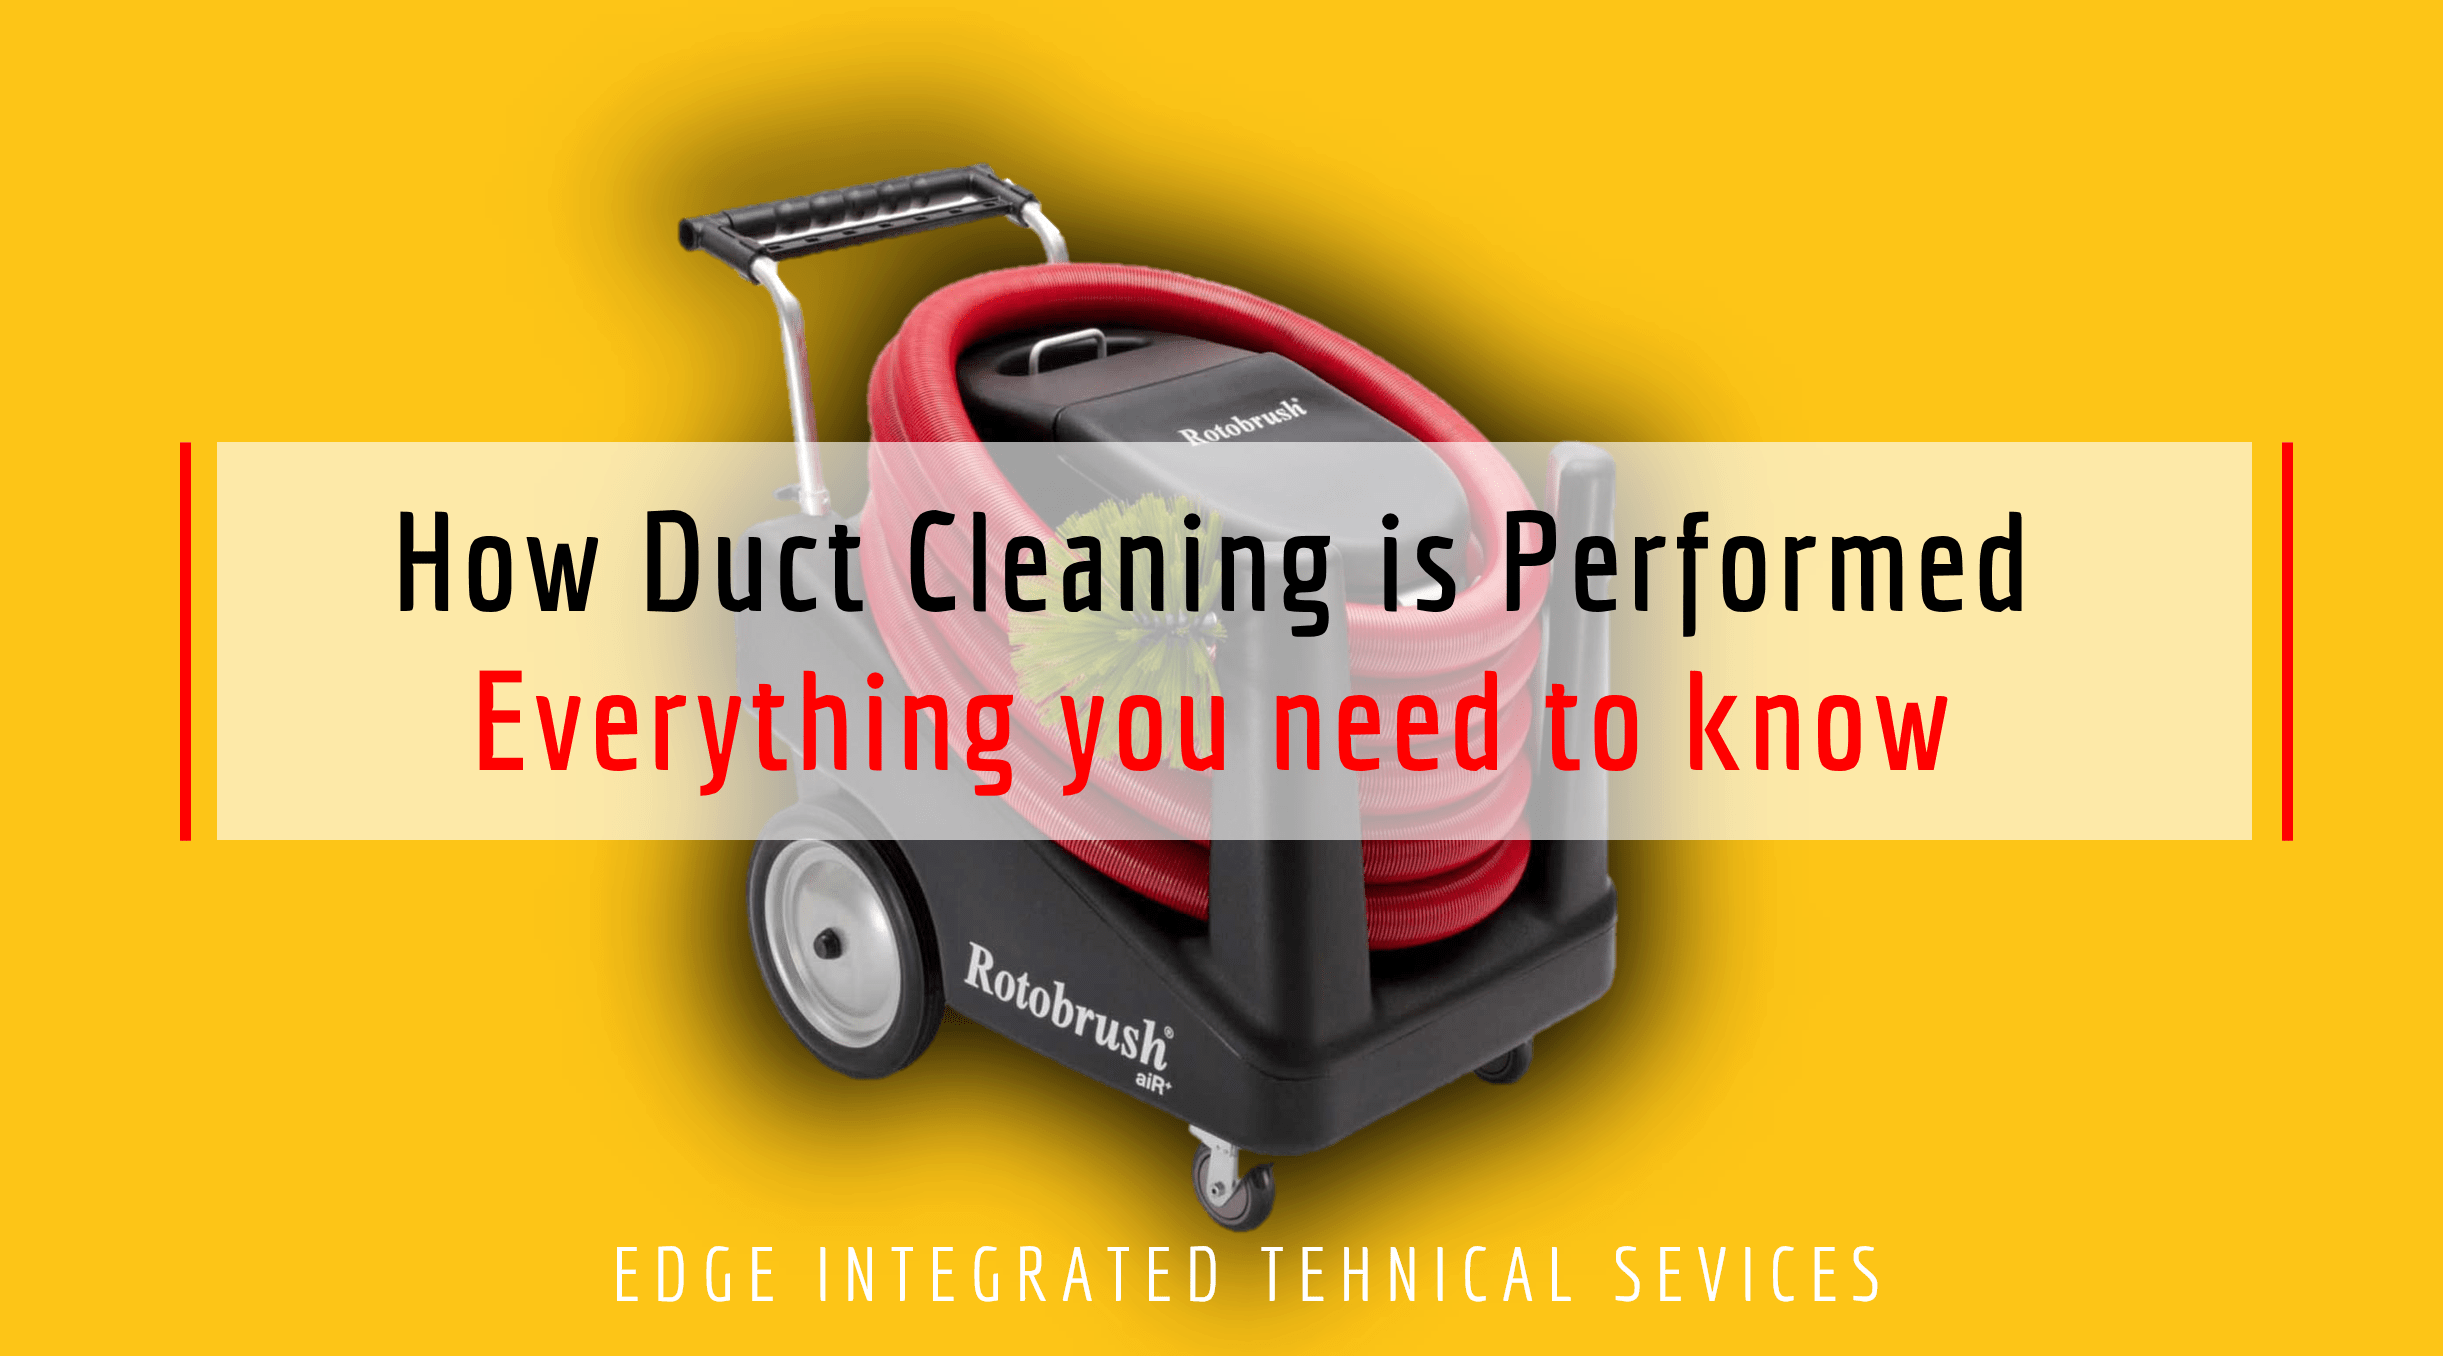 How Duct Cleaning is Performed - Everything you need to know